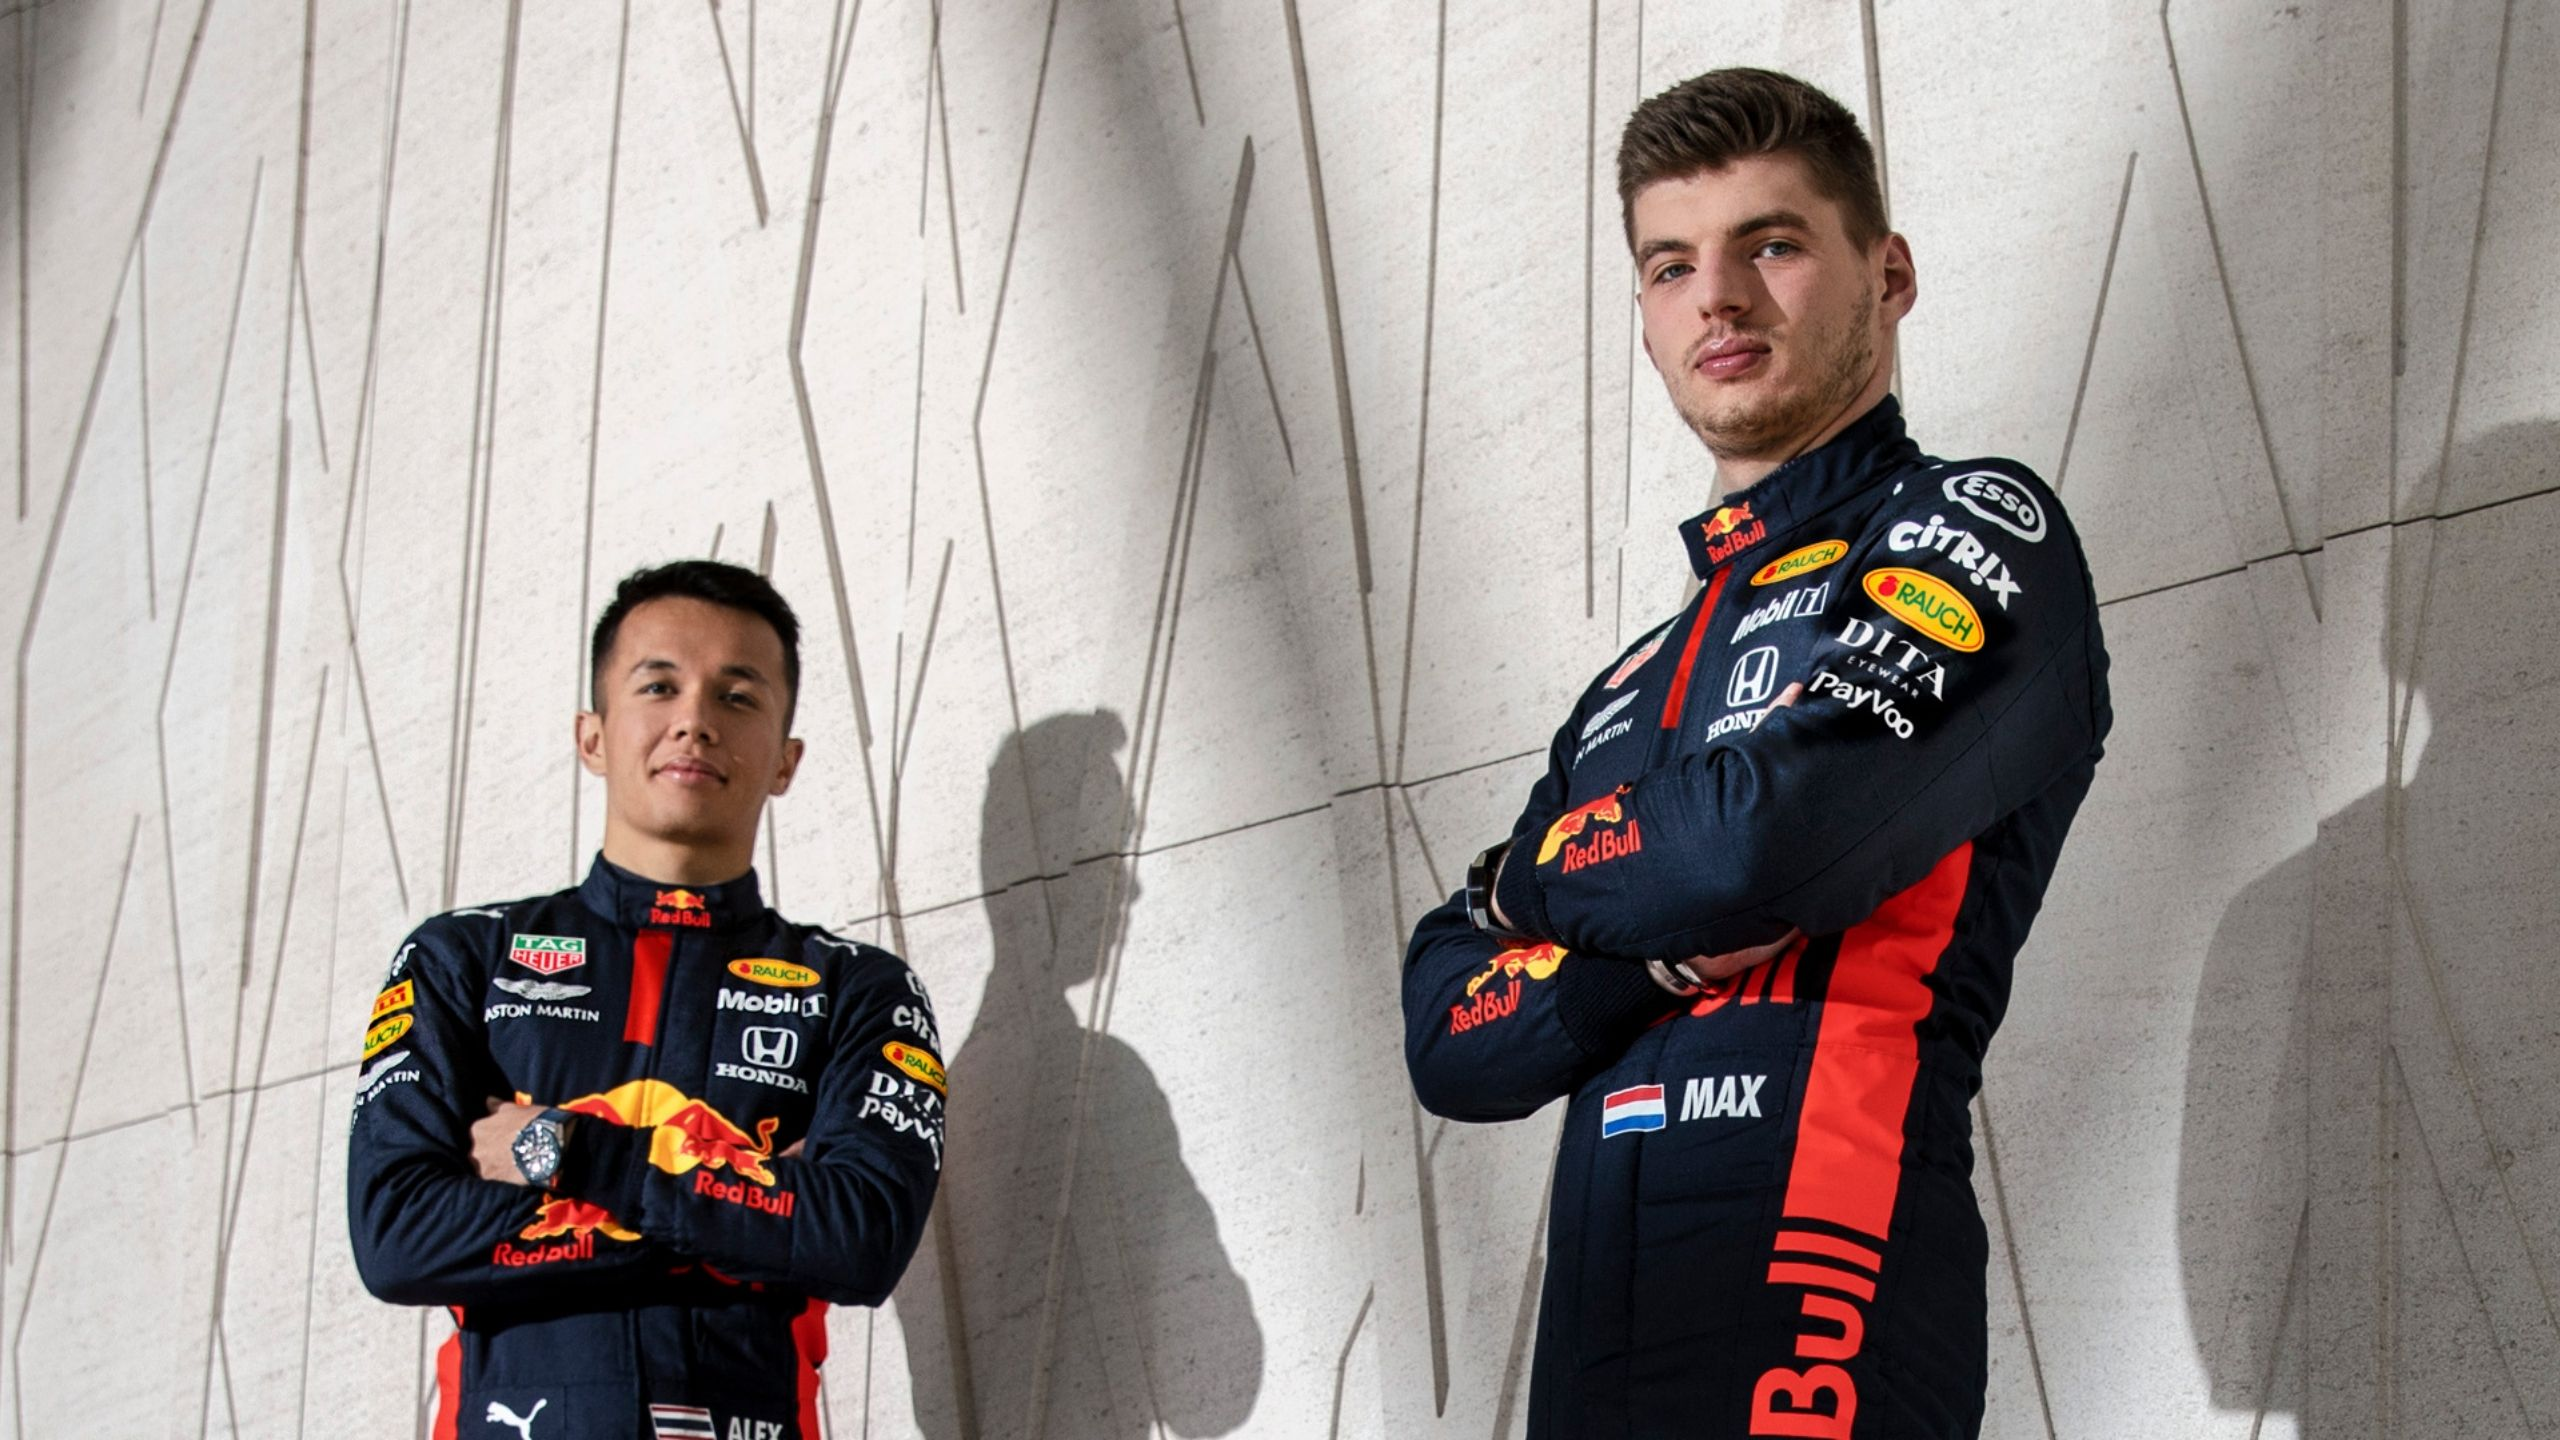 """""""We want to see Alex lay claim to that seat"""" - Red Bull team principal Christian Horner gives lifeline to Alex Albon until end of season"""